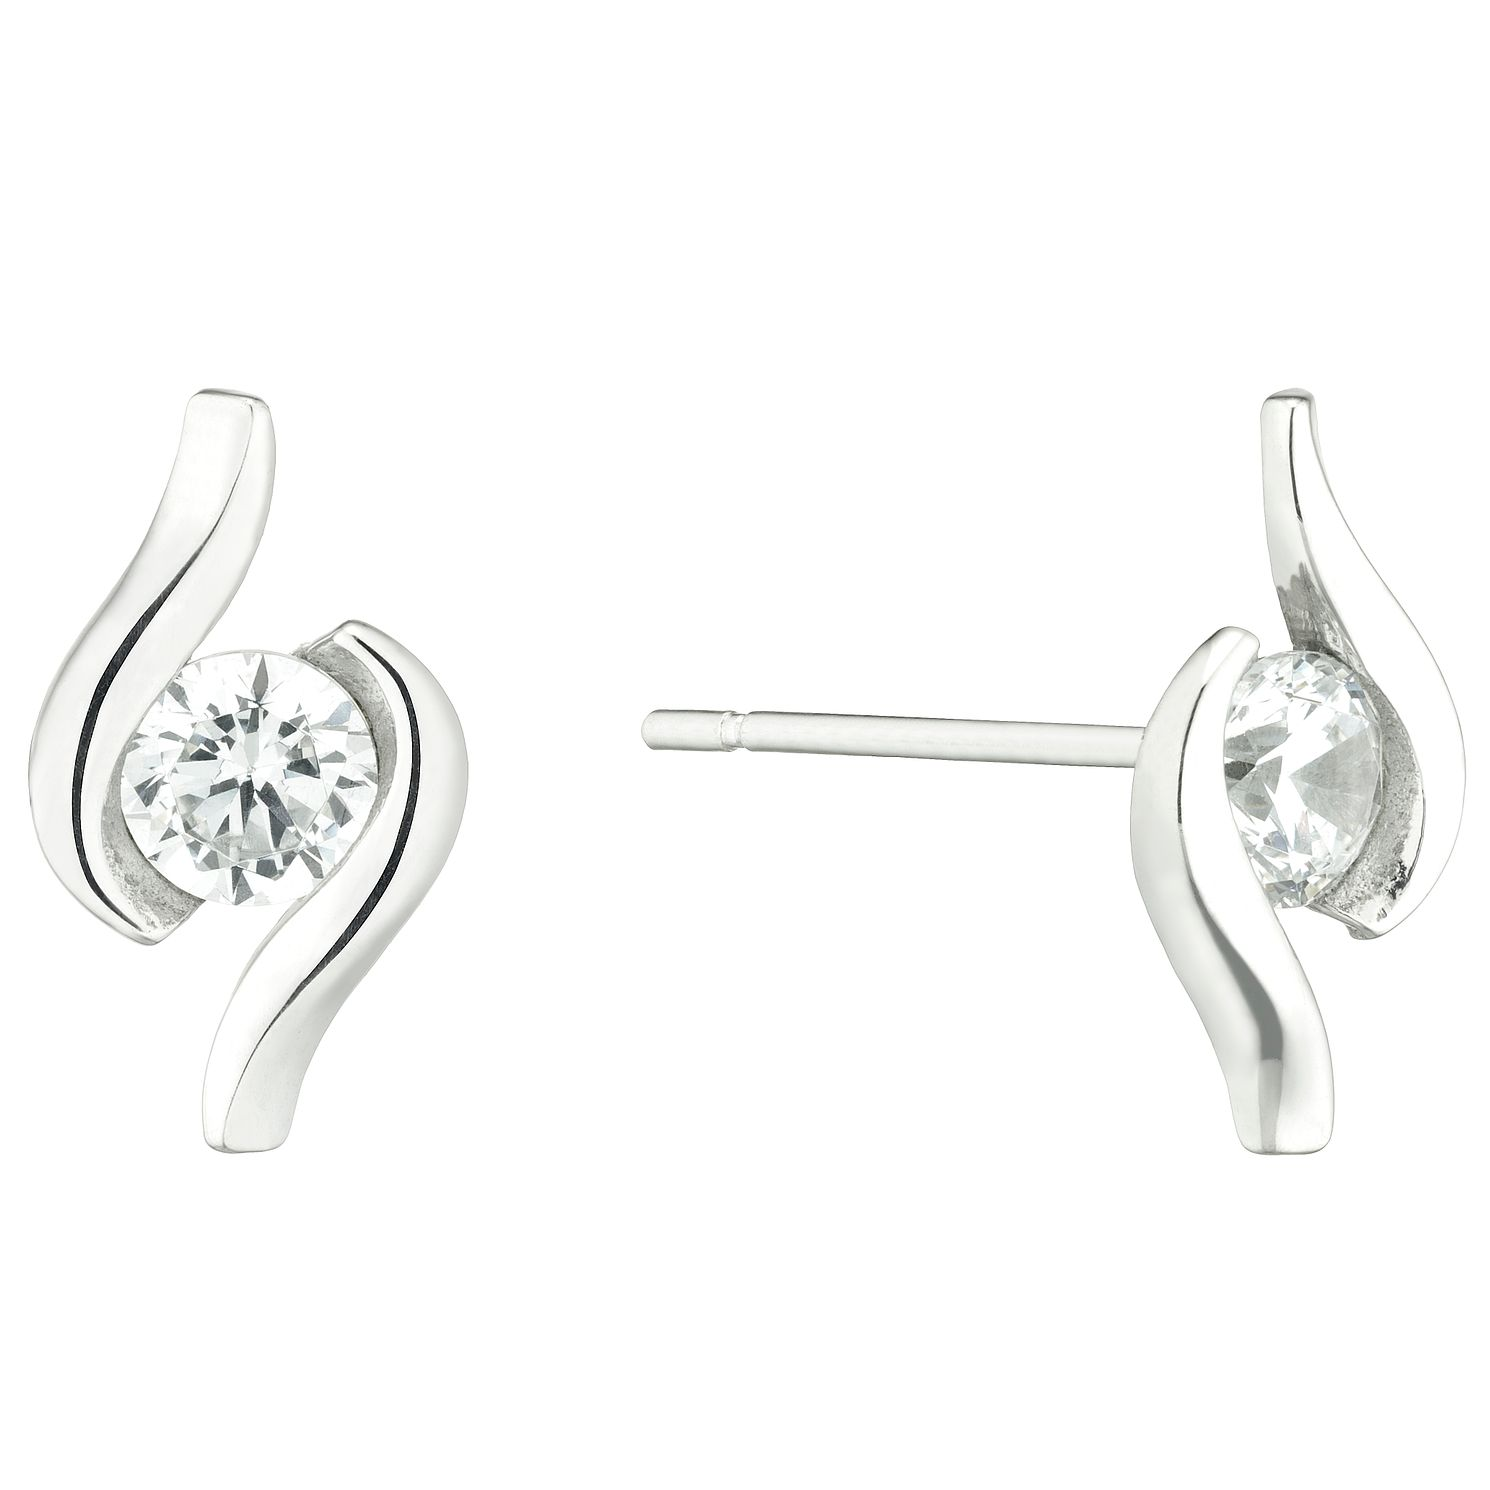 9ct White Gold Cubic Zirconia Swirl Stud Earrings - Product number 5241634